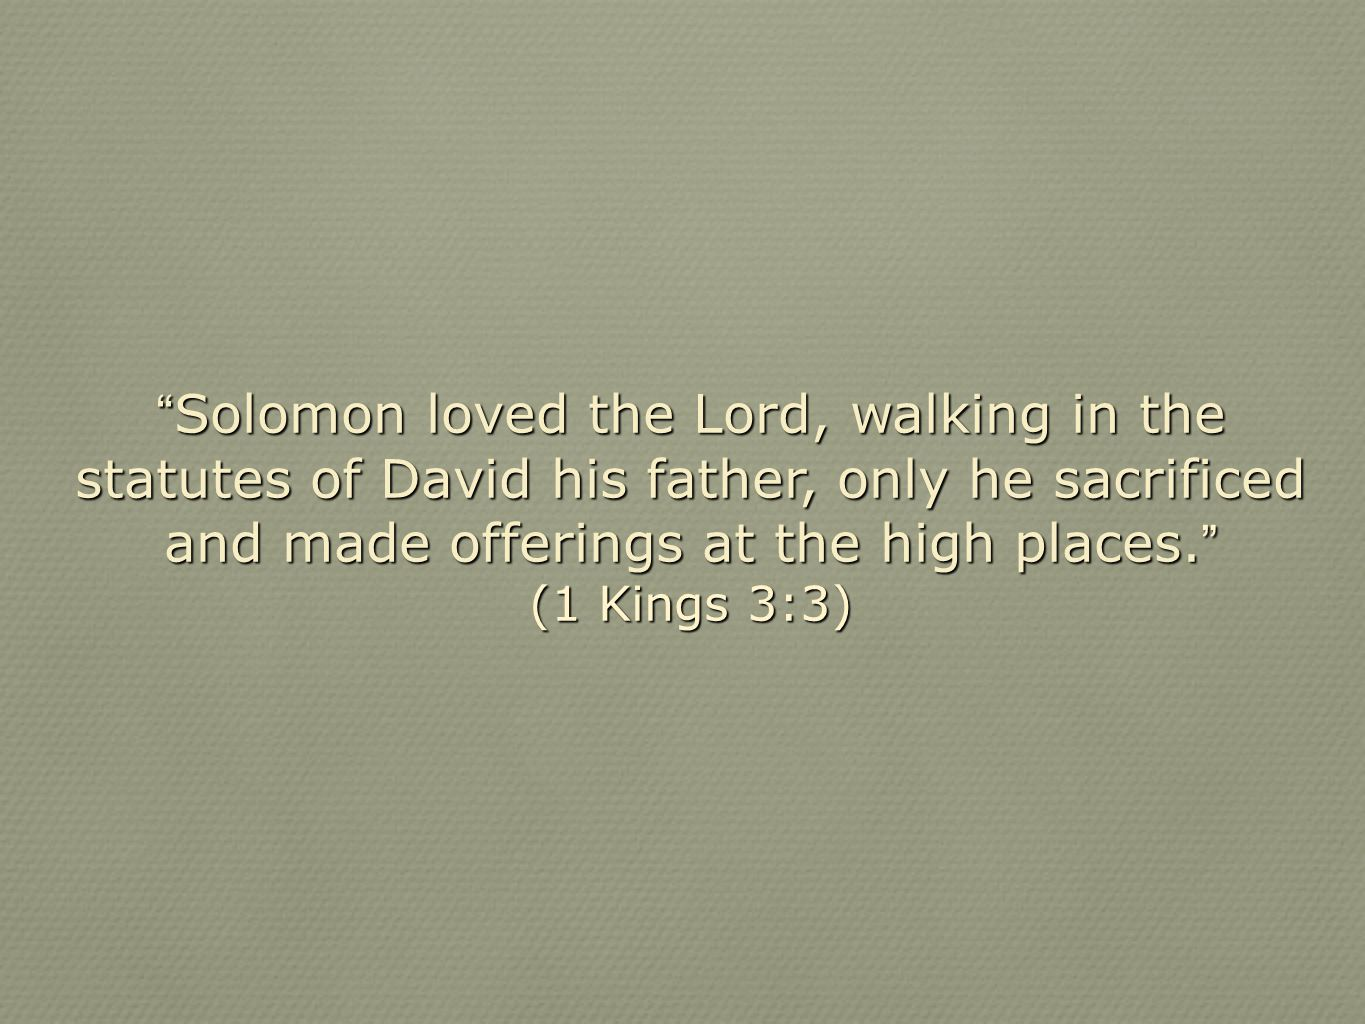 Solomon loved the Lord, walking in the statutes of David his father, only he sacrificed and made offerings at the high places.